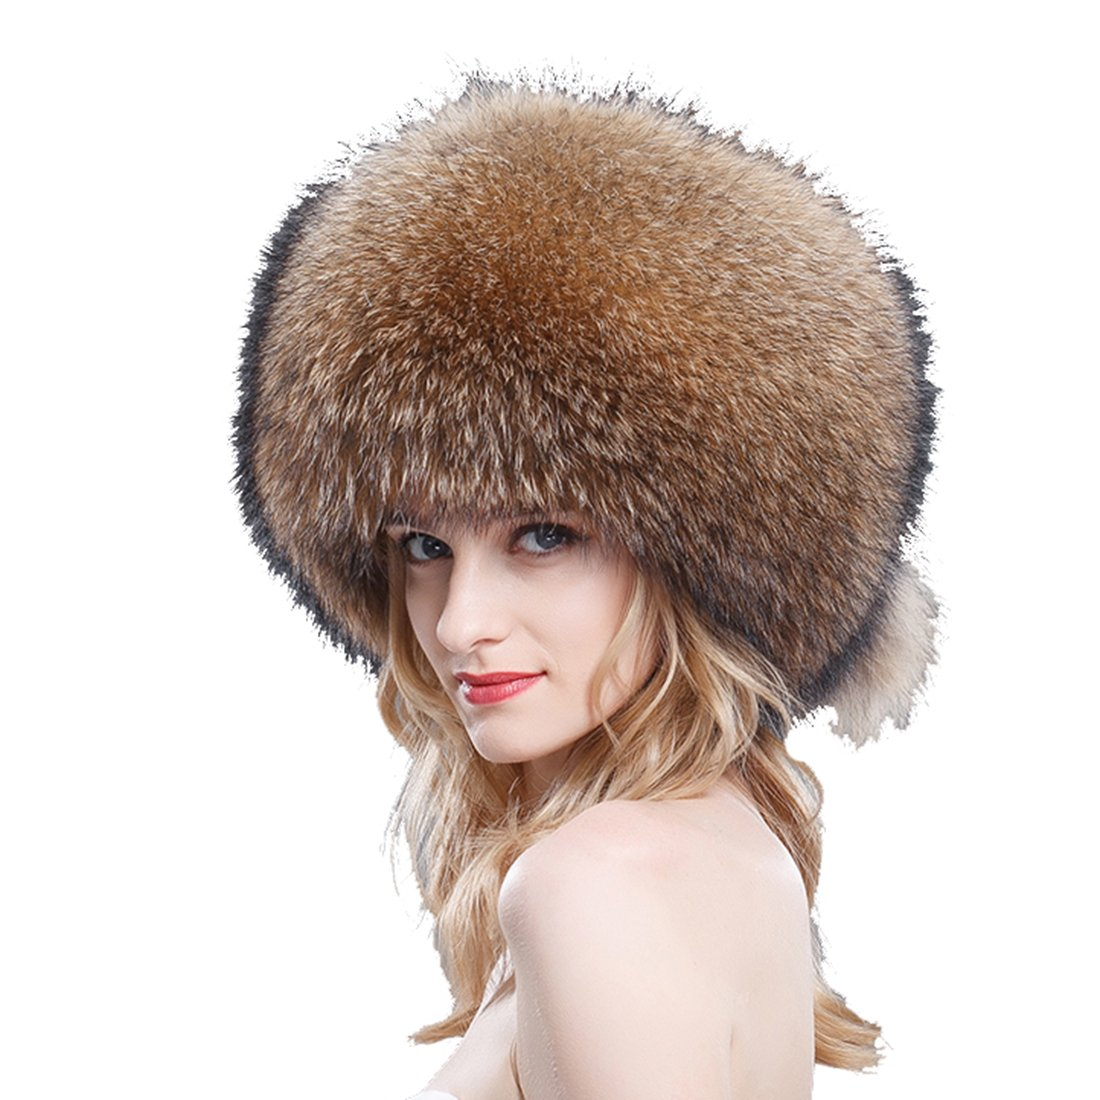 URSFUR Finn Raccoon All Fur Zhivago Pill Box Fur Hat Natural Color by URSFUR